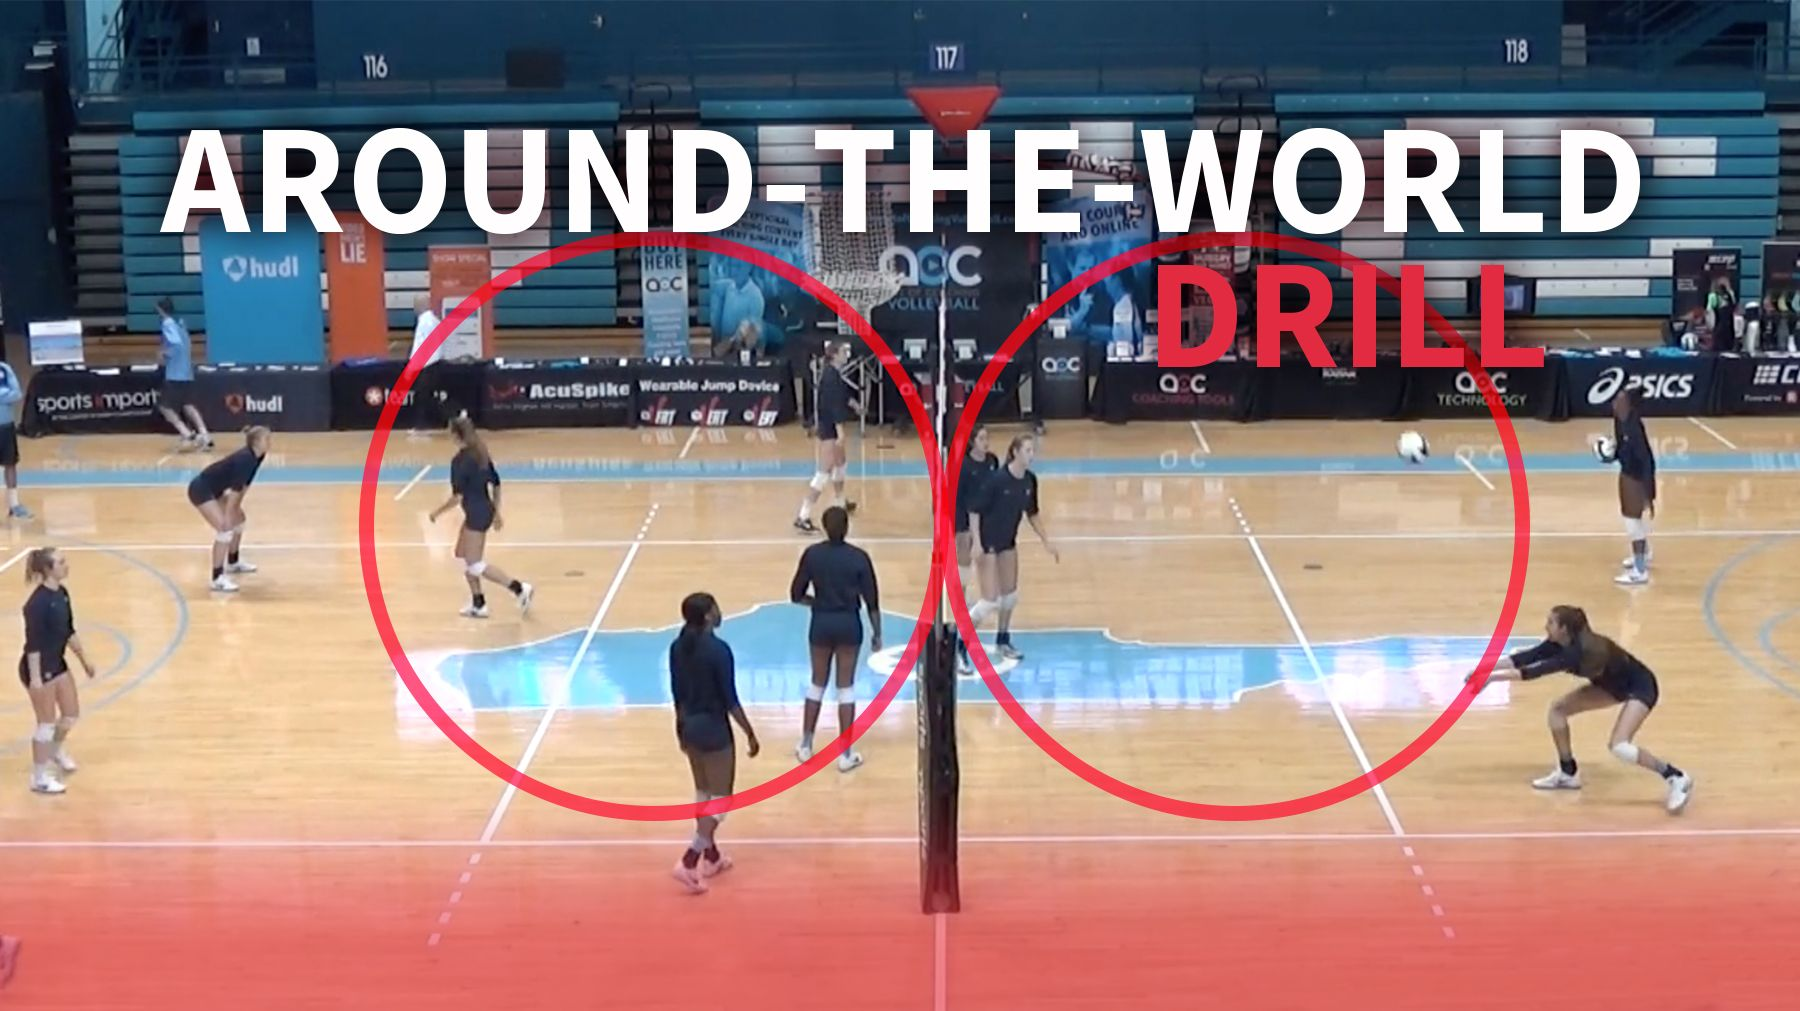 Around The World Drill To Warm Up Players In Every Discipline The Art Of Coaching Volleyball Coaching Volleyball Volleyball Skills Volleyball Training